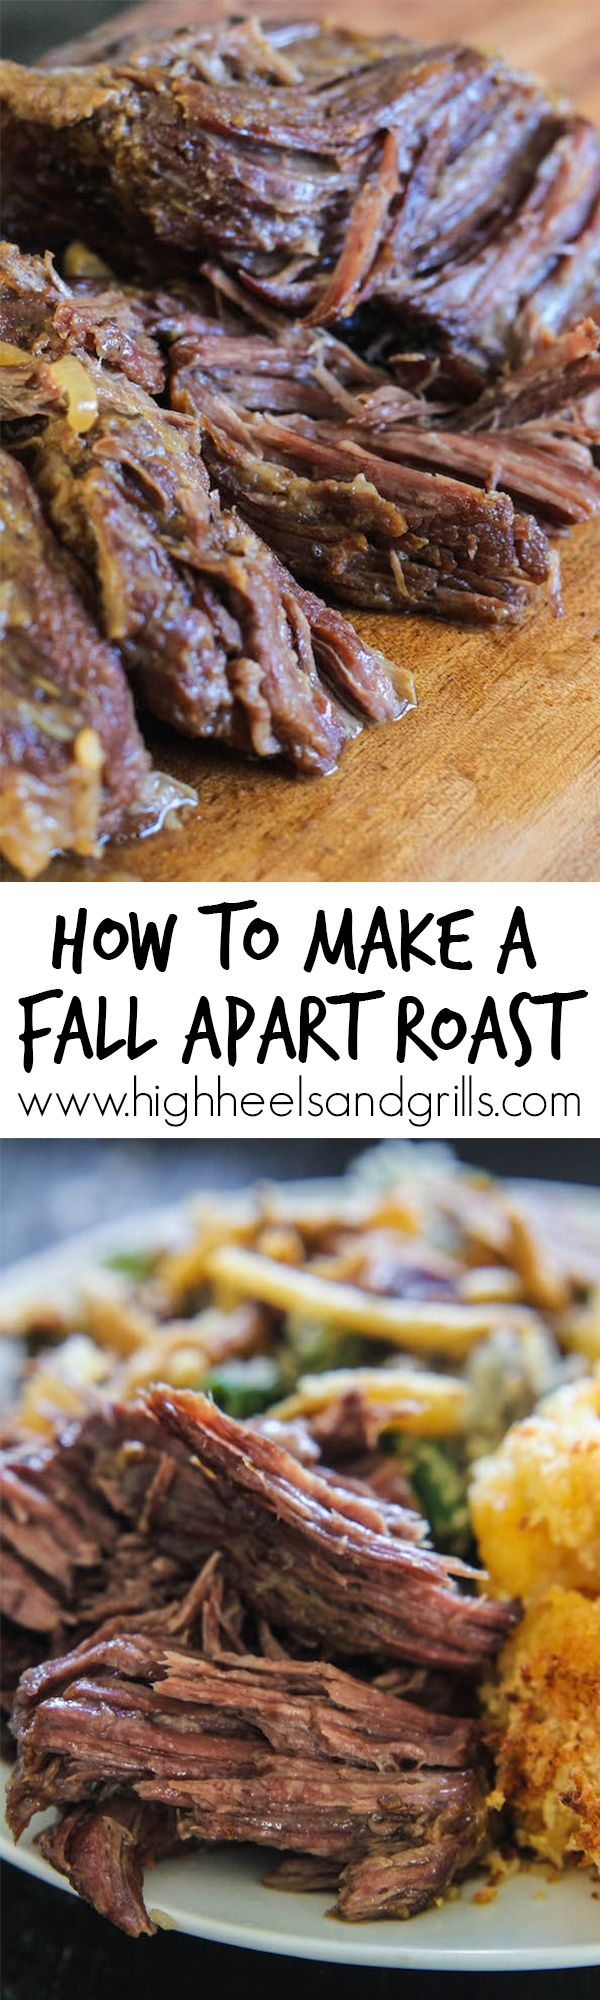 How to Make a Fall Apart Roast - One that will melt in your mouth and takes little effort on your part. http://www.highheelsandgrills.com/how-to-make-a-fall-apart-roast/ ‎